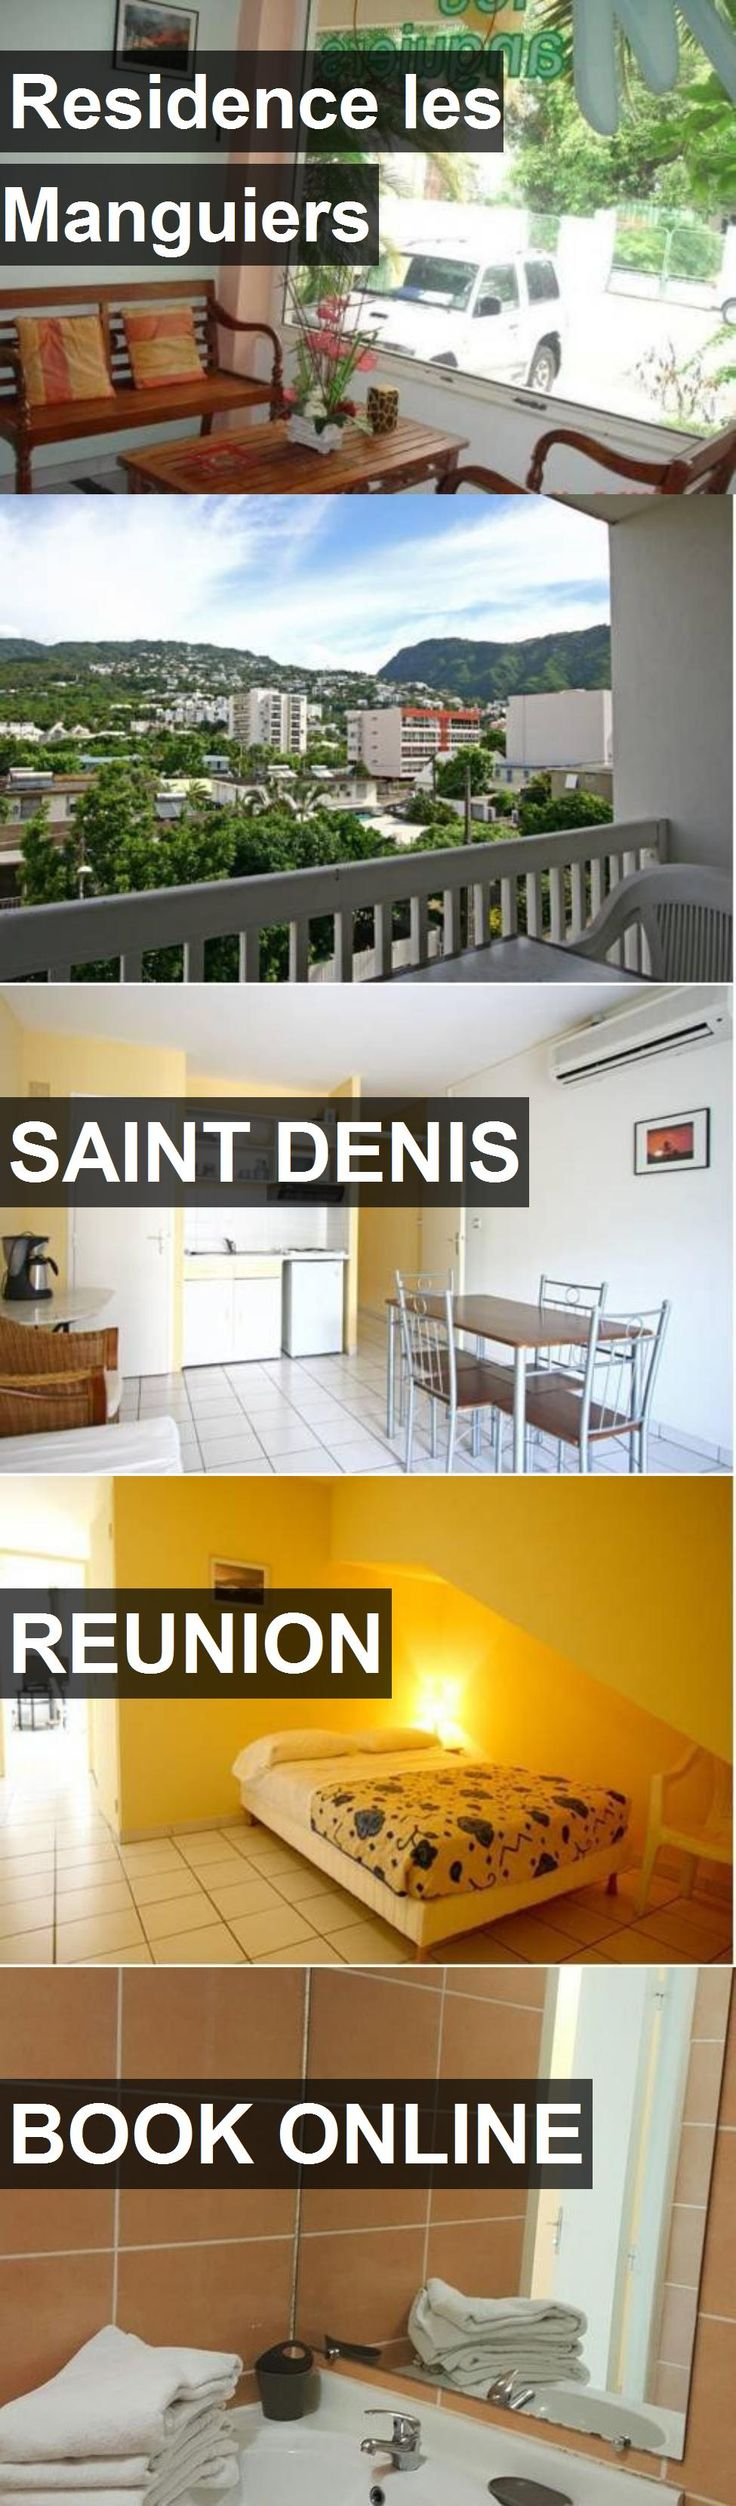 Hotel Residence les Manguiers in Saint Denis, Reunion. For more information, photos, reviews and best prices please follow the link. #Reunion #SaintDenis #ResidencelesManguiers #hotel #travel #vacation